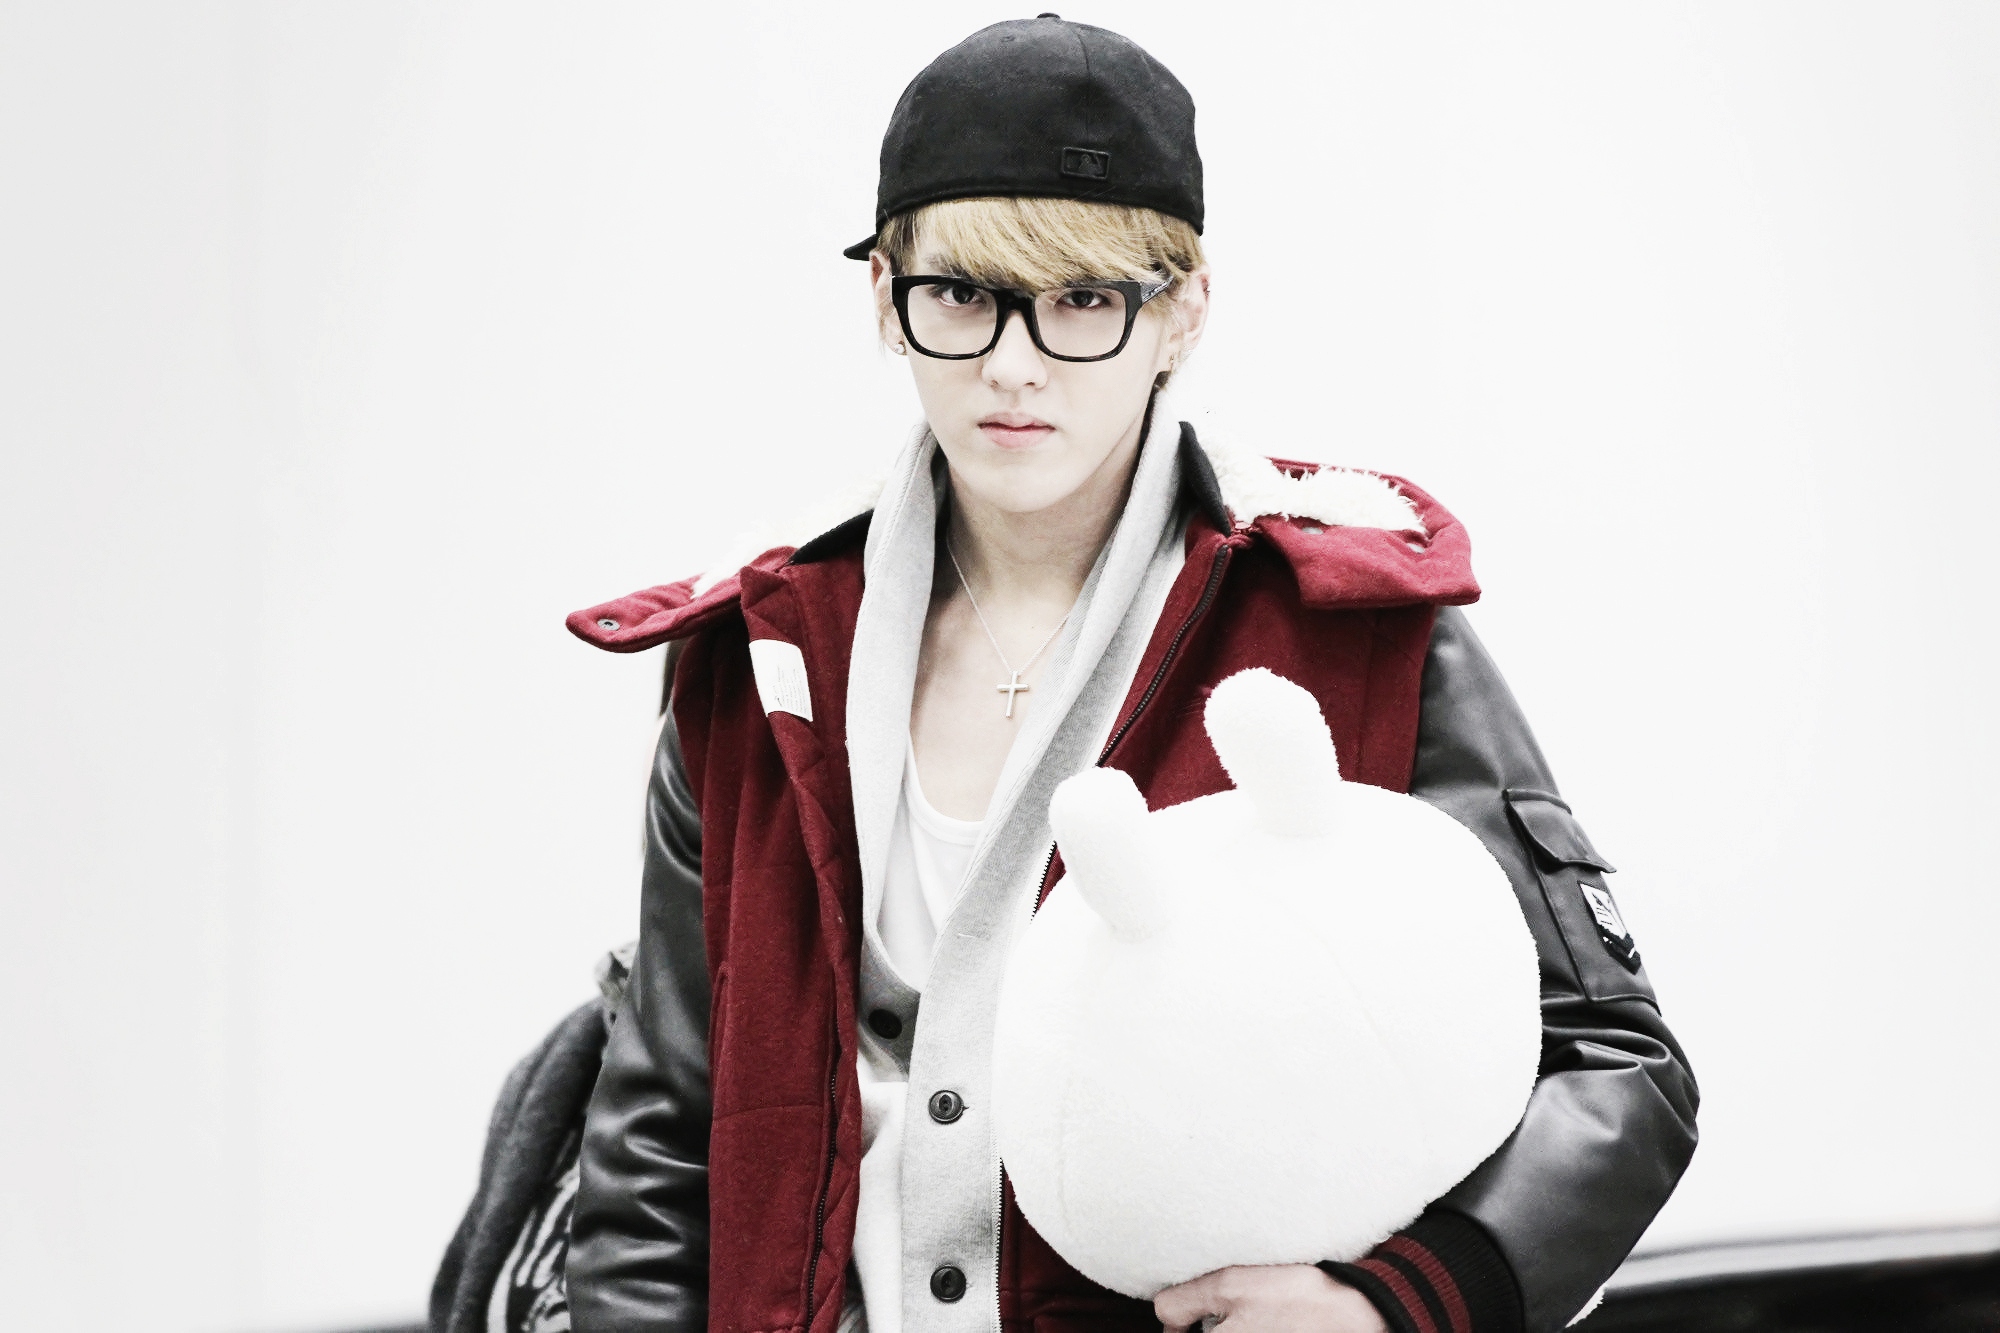 kris exo-m cute hd wallpaper | kris exo | pinterest | exo, hd